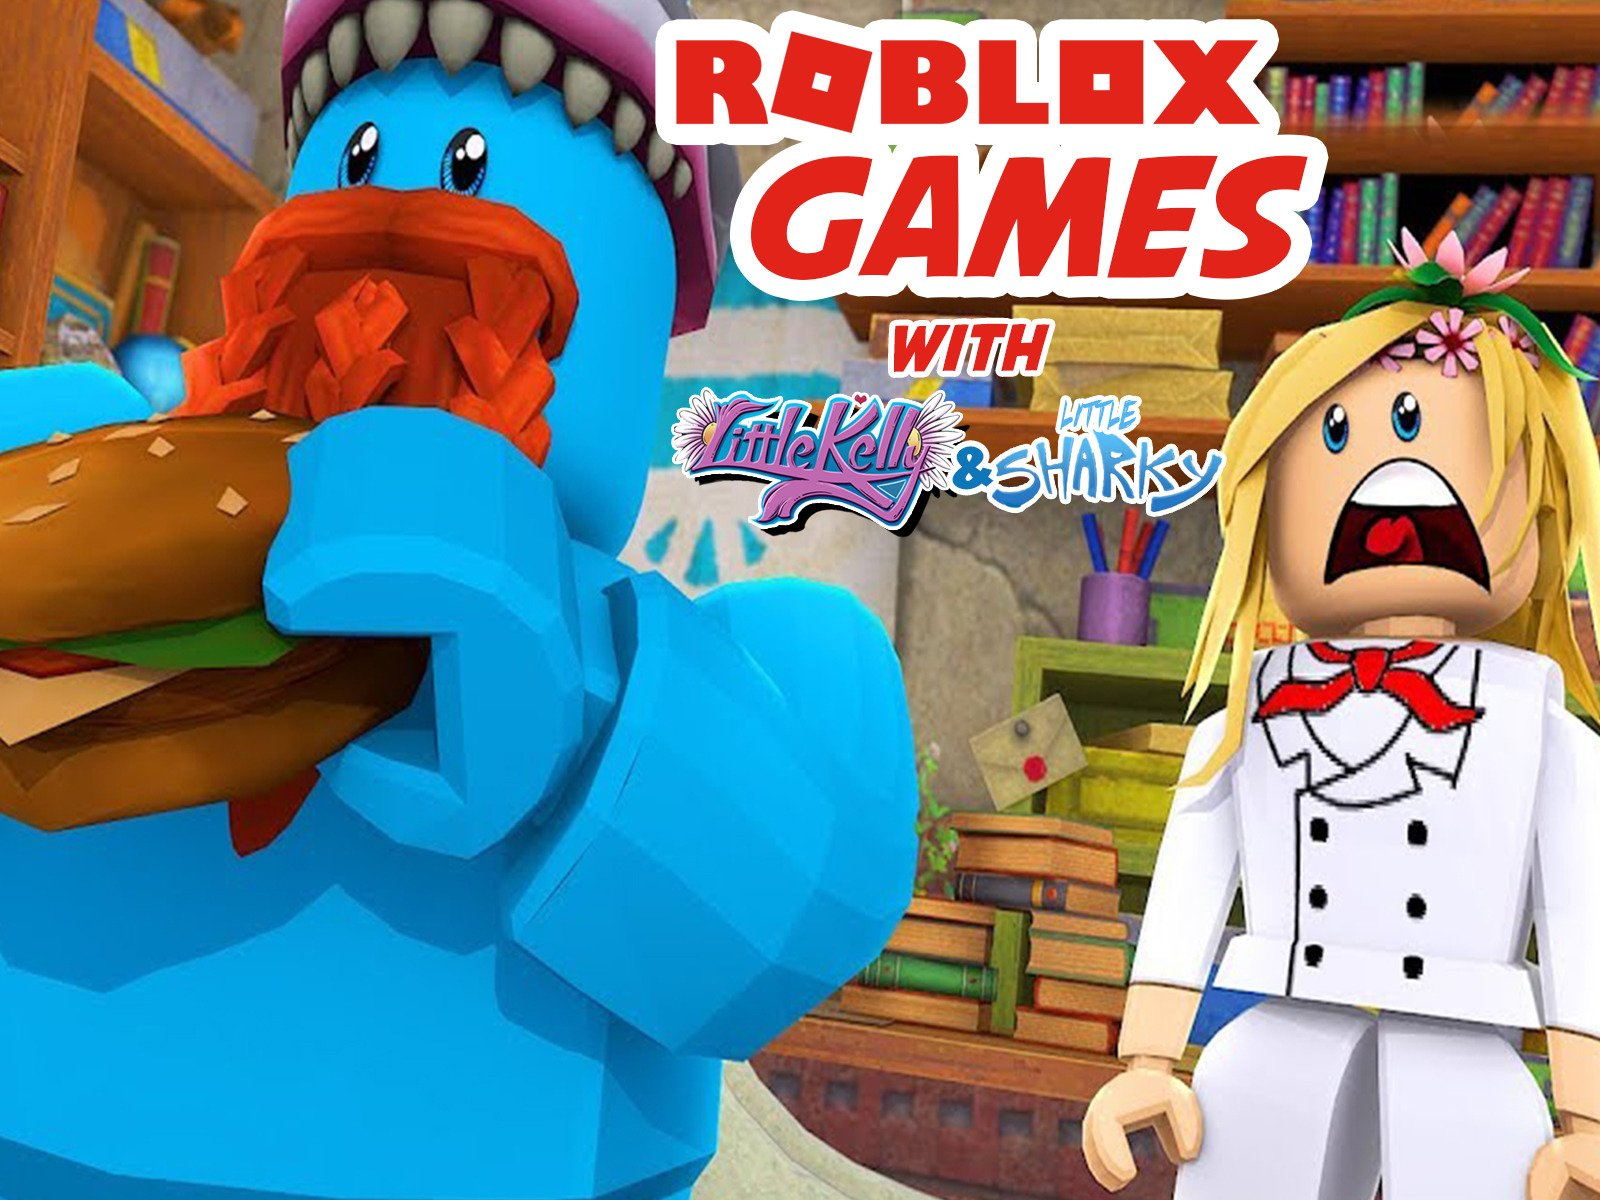 Roblox Games with Little Kelly & Little Sharky on Amazon Prime Video UK